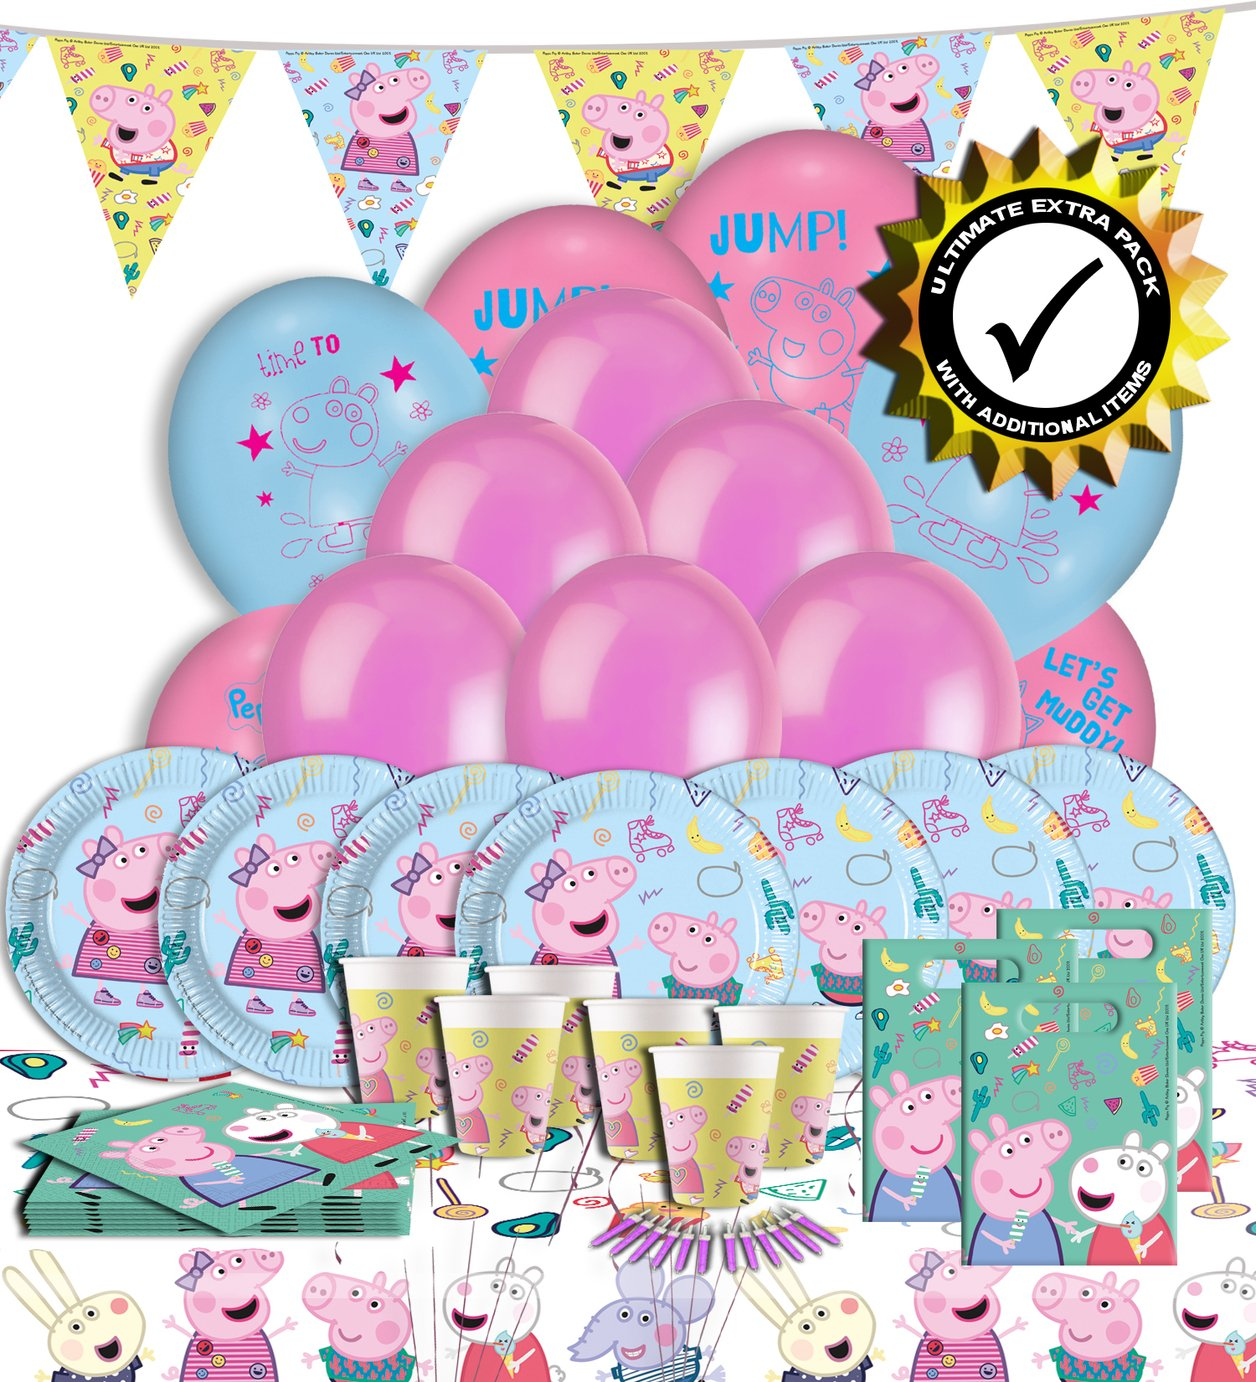 Peppa Pig Ultimate Extra Peppa Pig Party Pack review